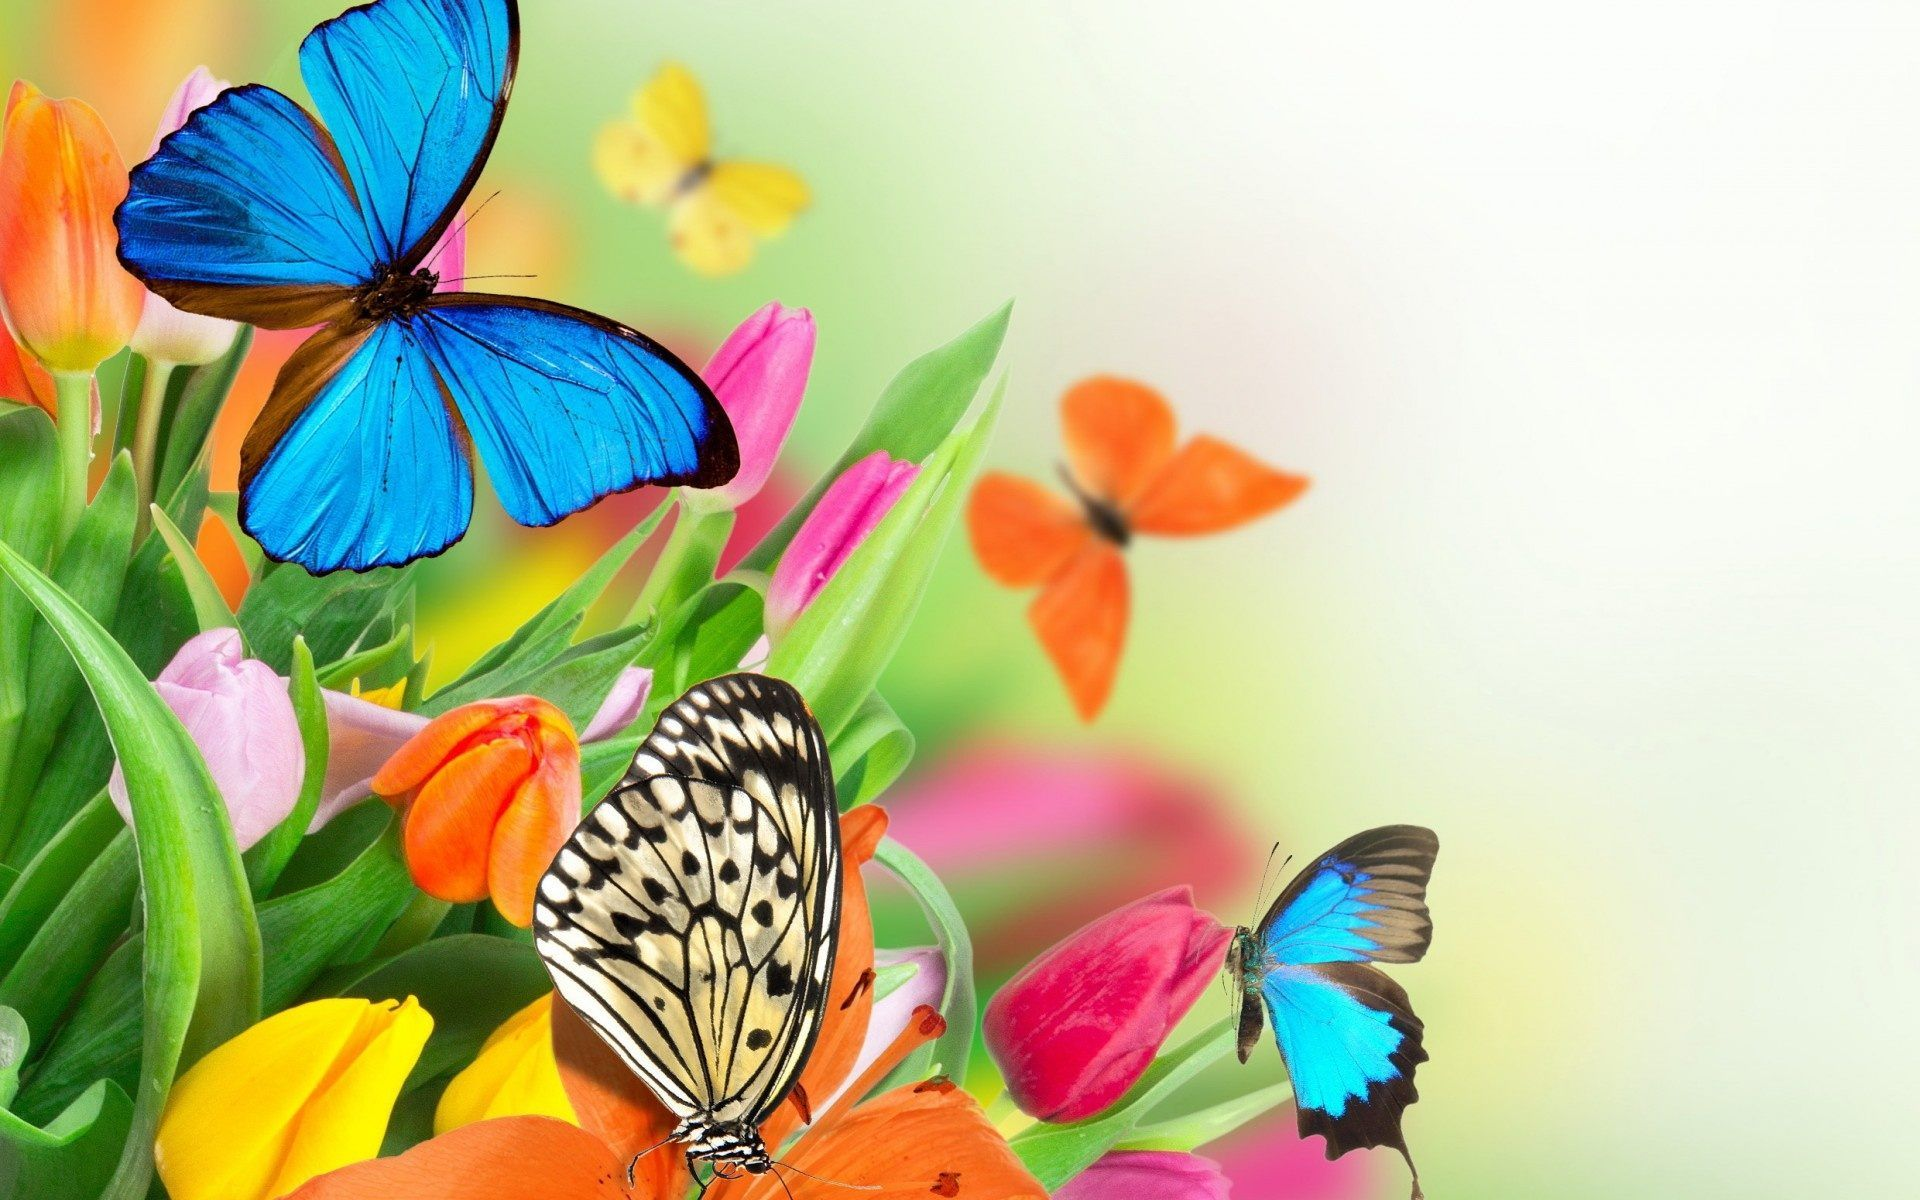 Colorful Butterfly Wallpapers Top Free Colorful Butterfly